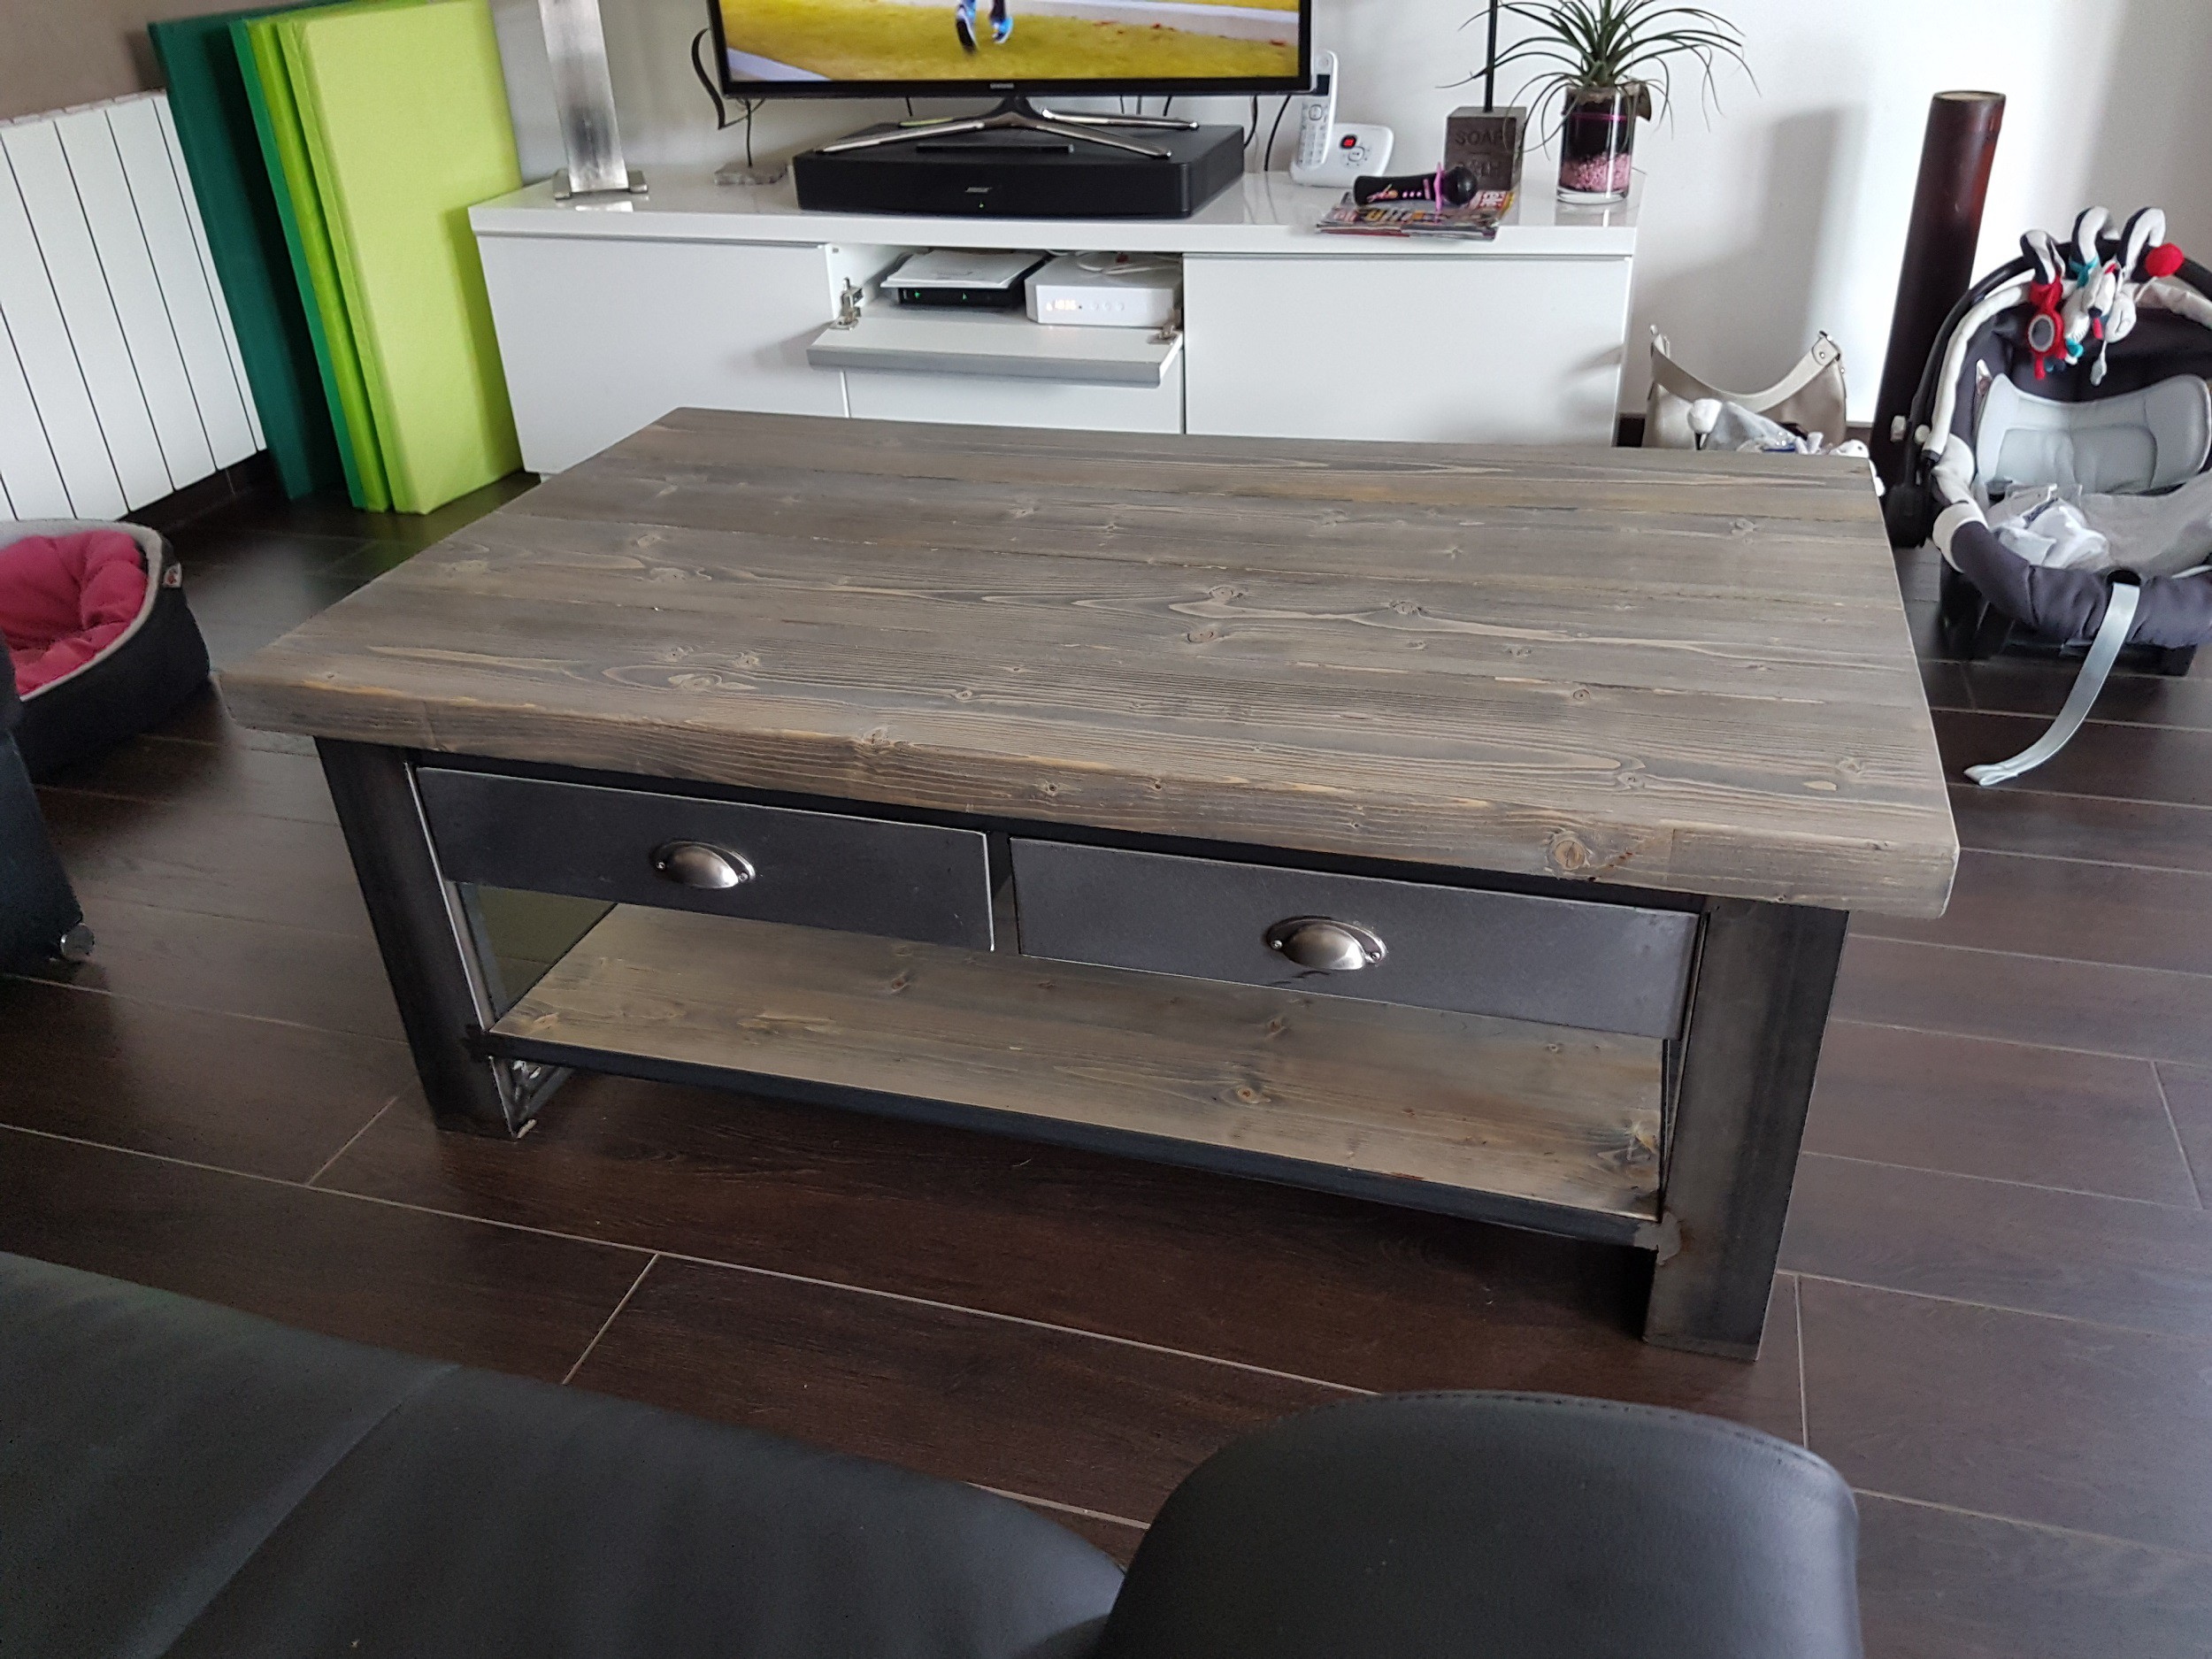 Table Basse Bois Metal Industriel Table Basse Sur Roulettes En M  # Grande Table Basse Carre Indus